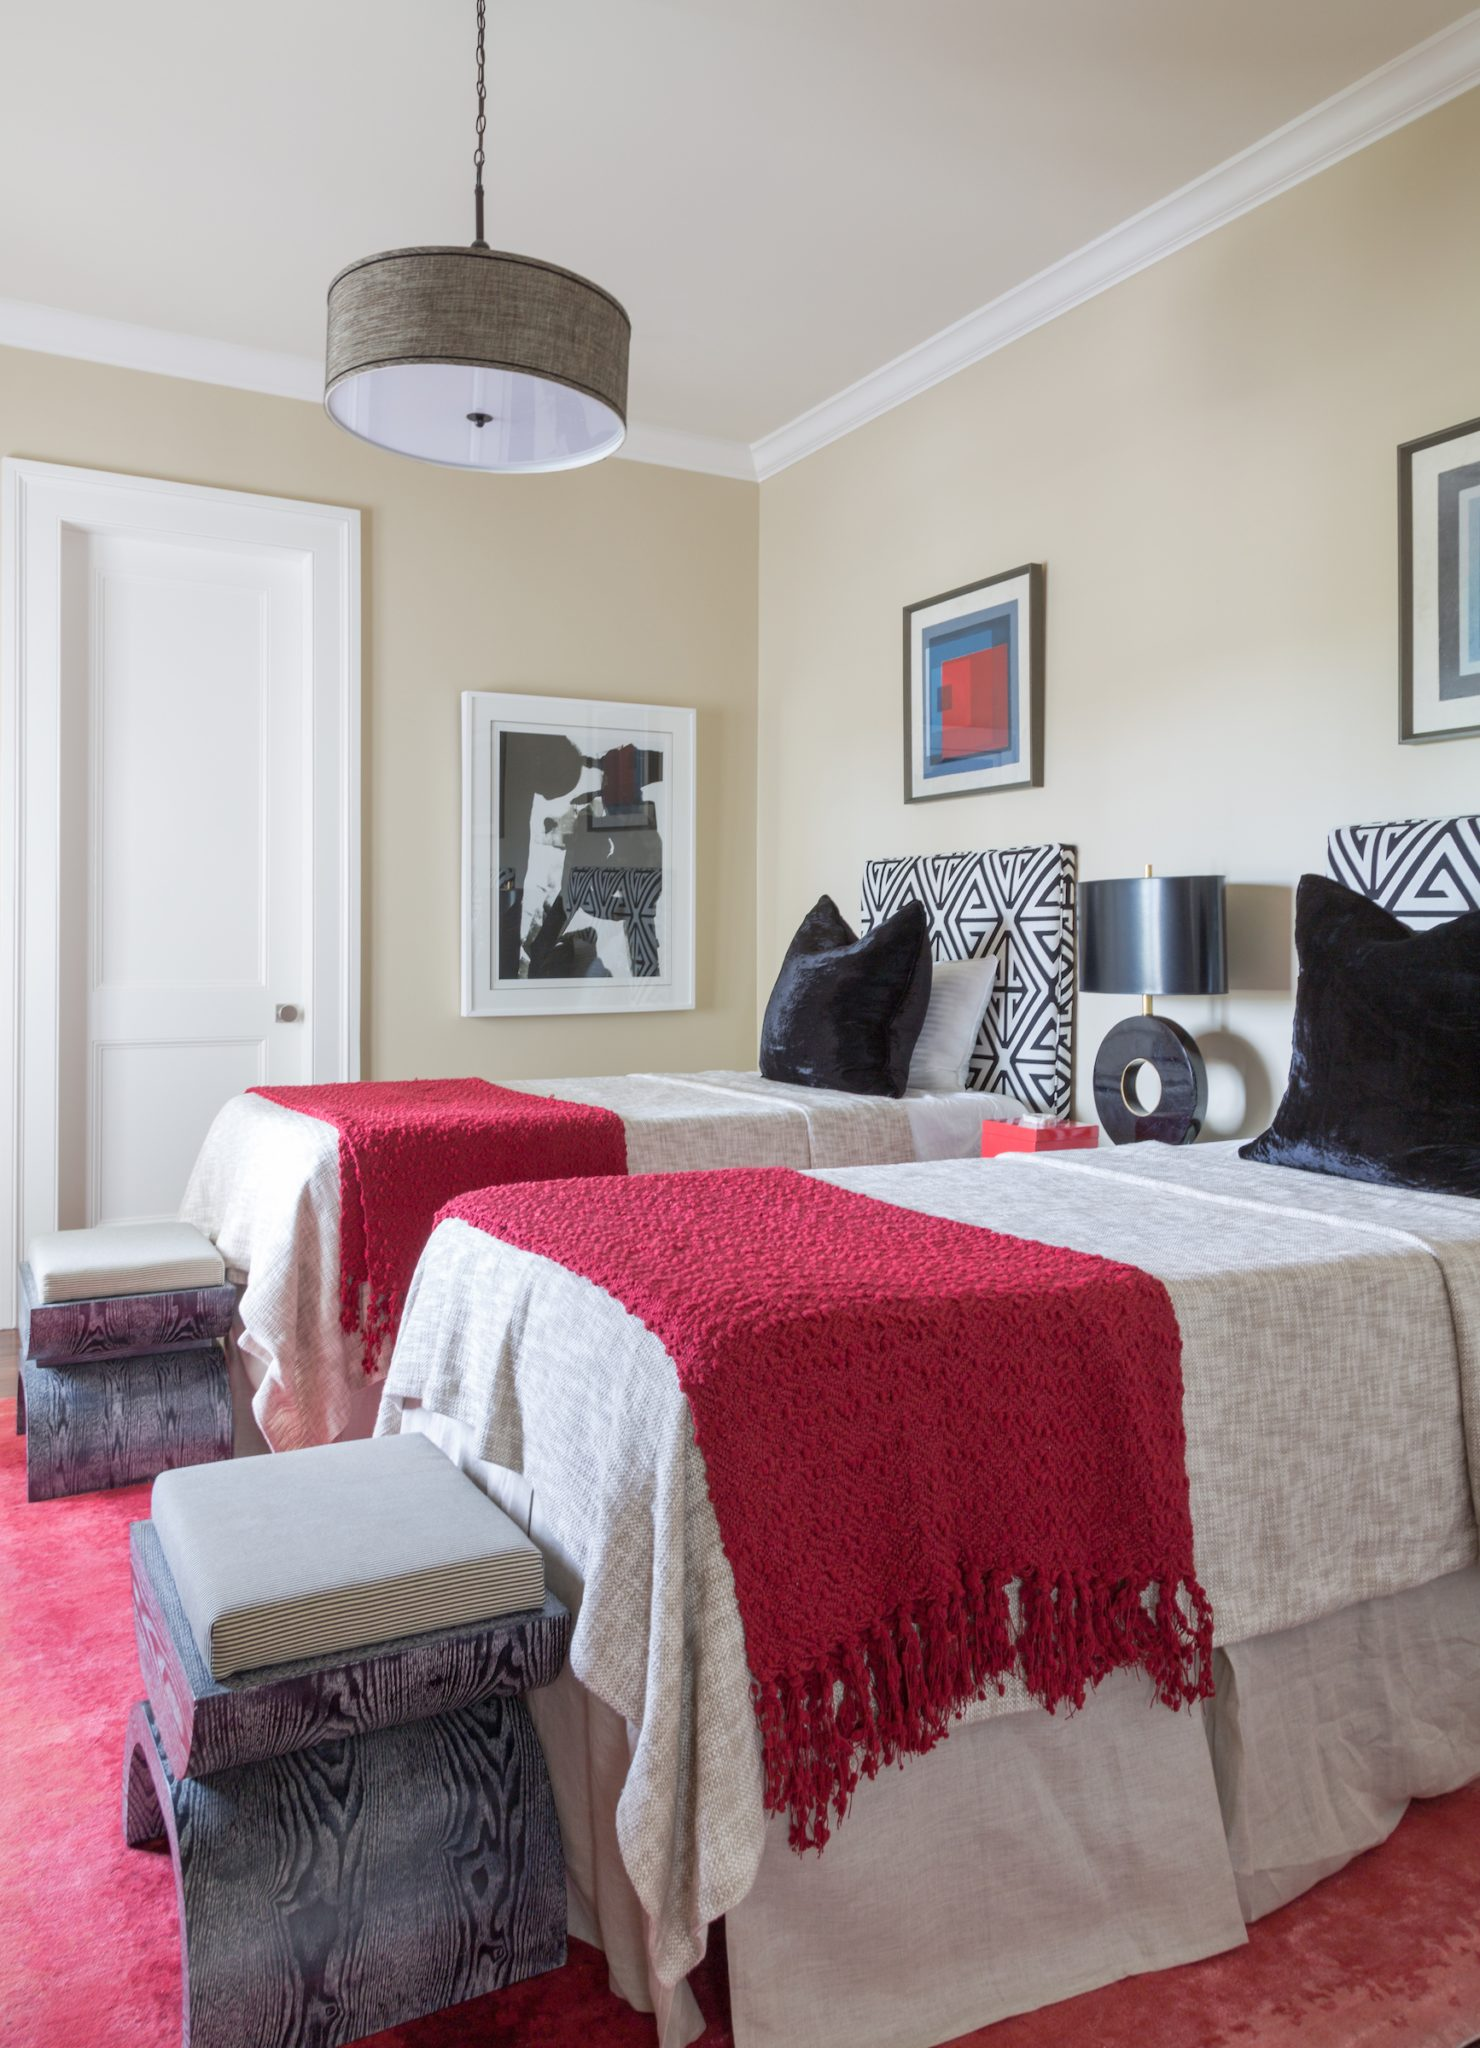 New Orleans Uptown Guest Bedroom with custom Thibaut twin headboards by Eclectic Home